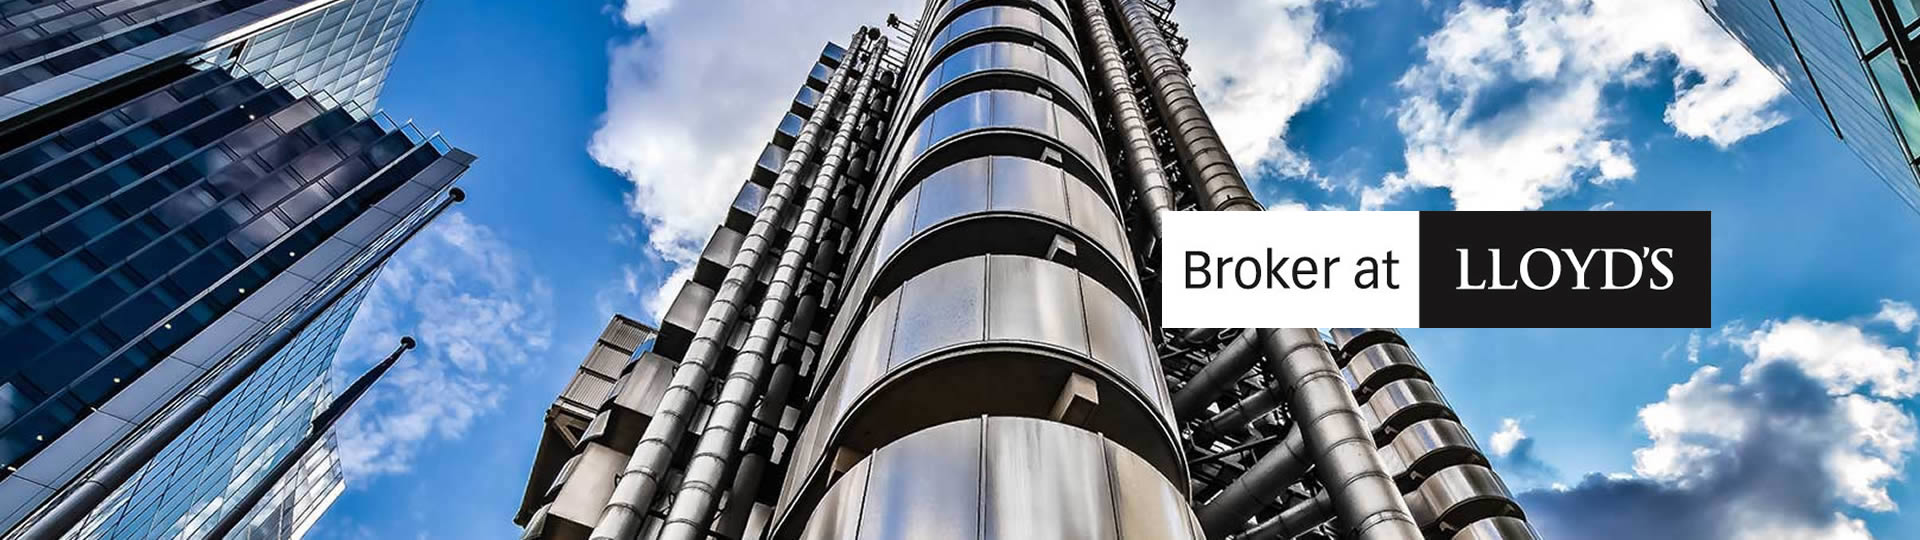 LLoyds of London insurance brokers head office